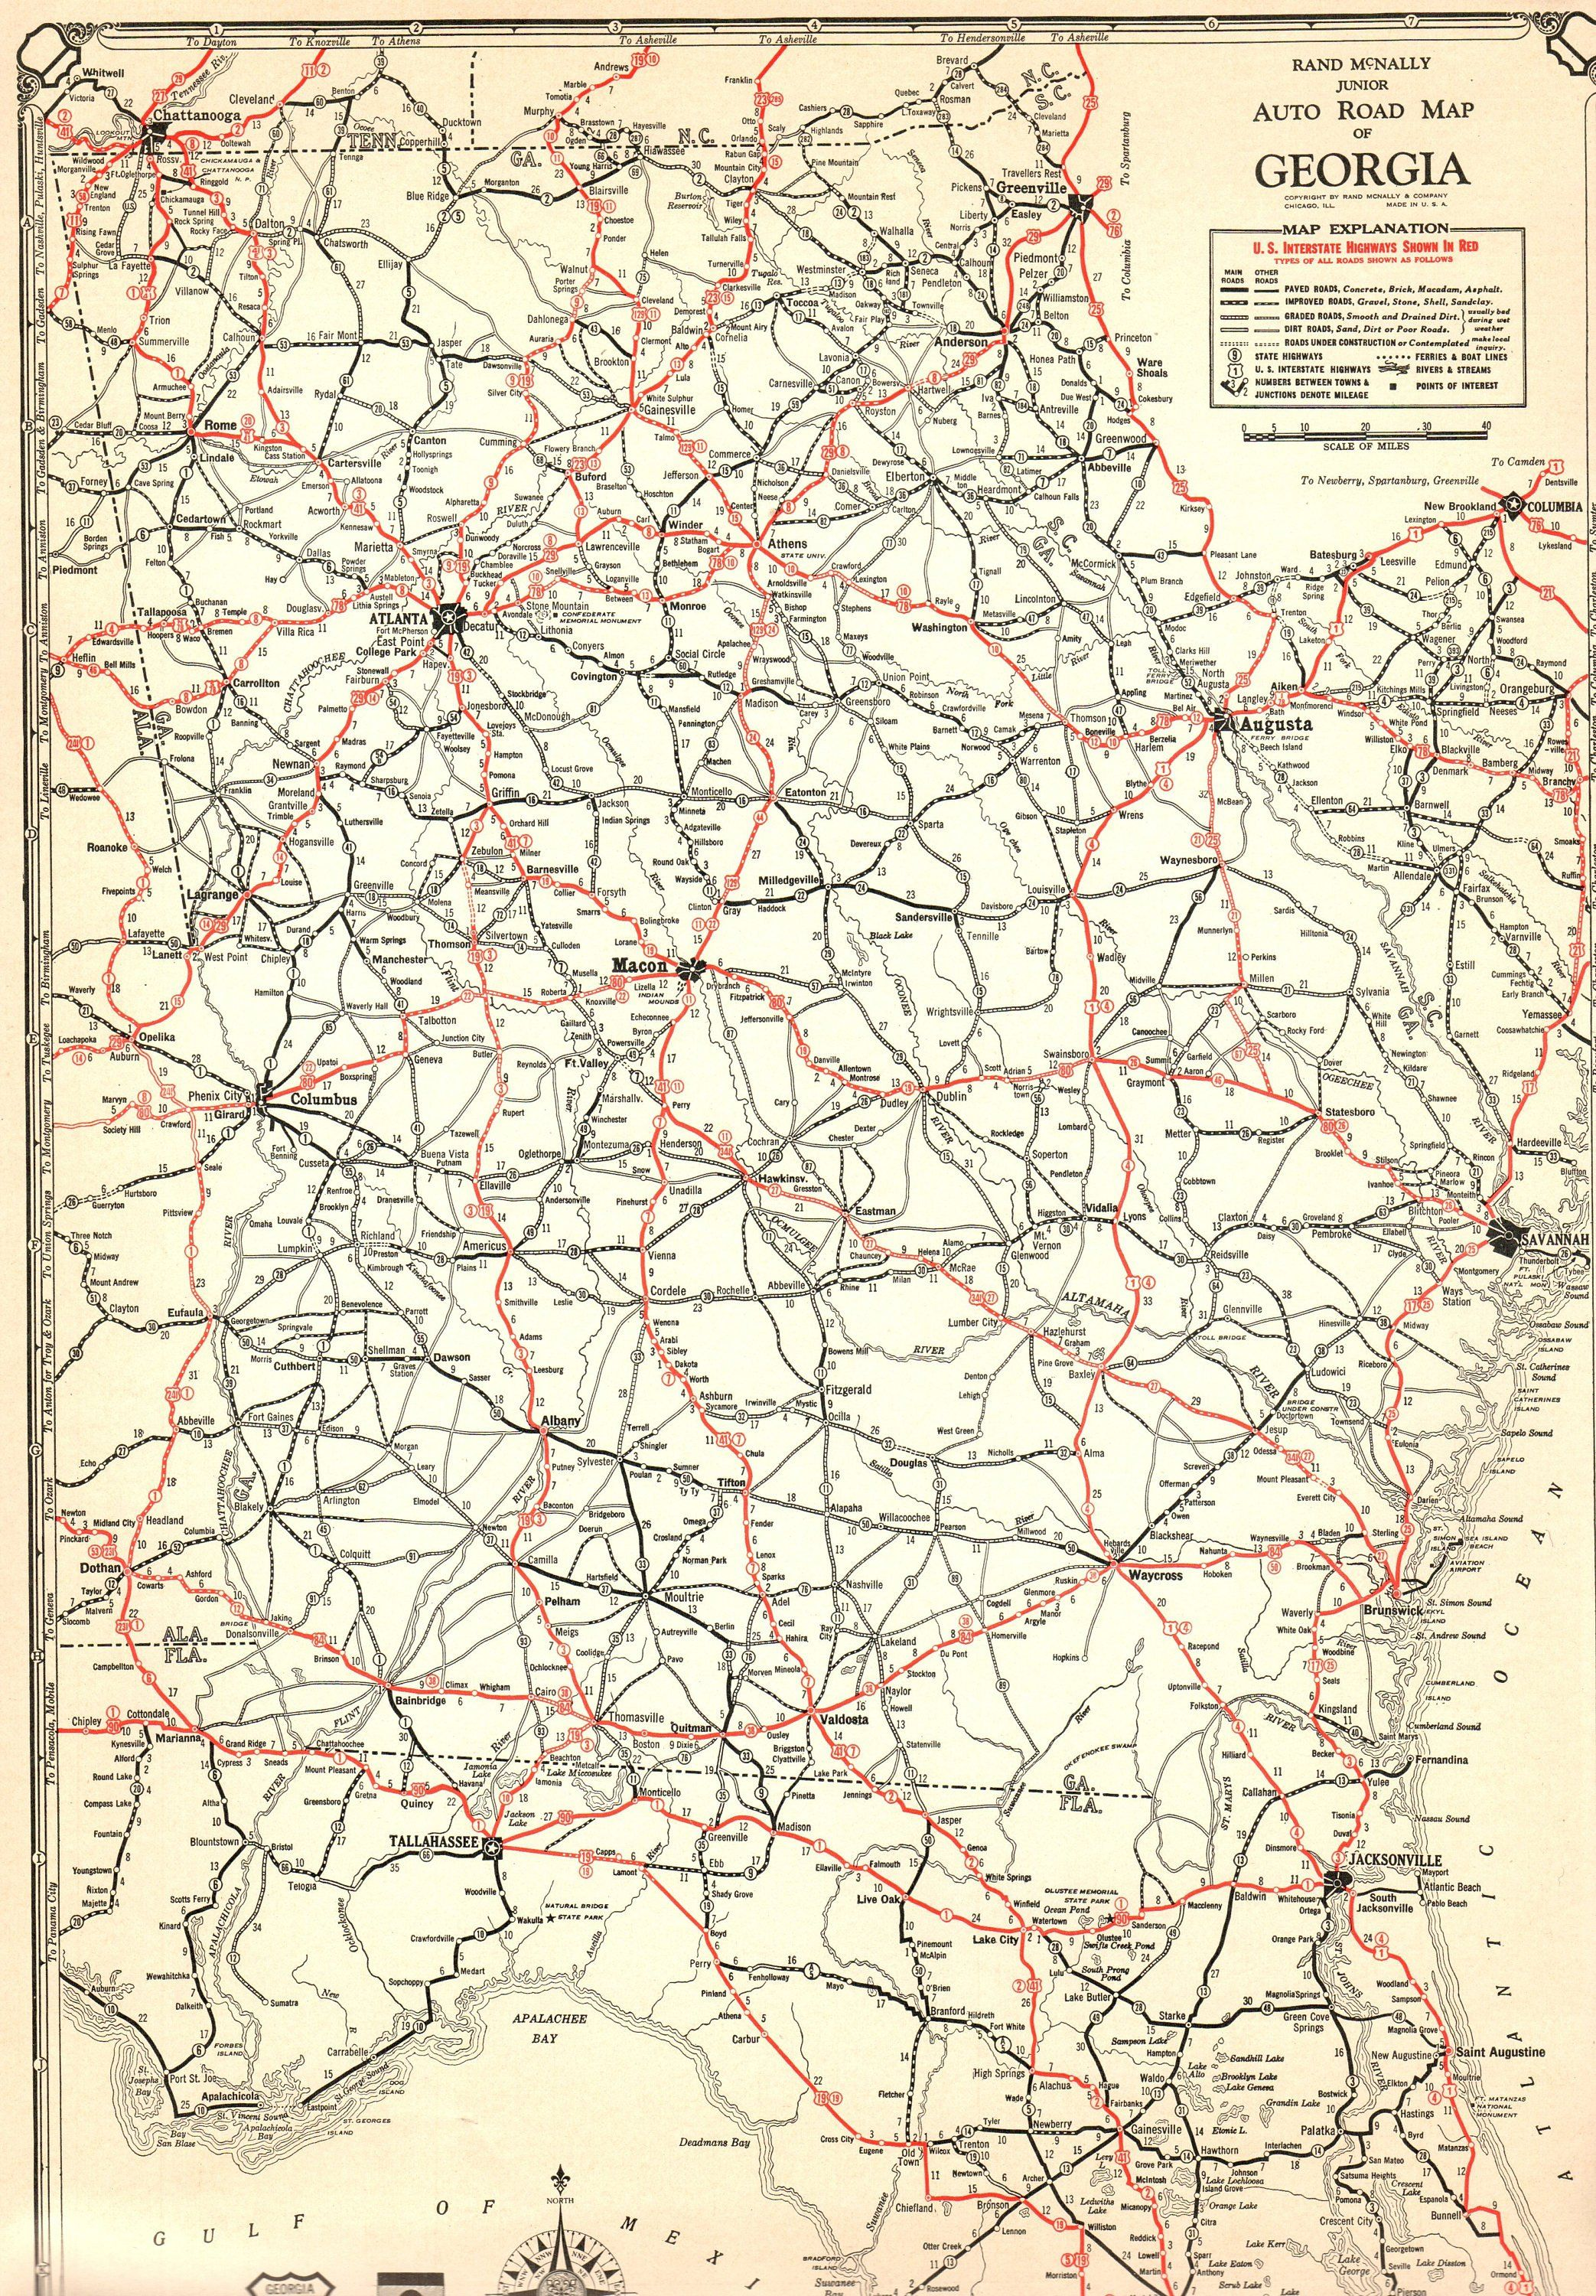 1930 Antique GEORGIA State Map Vintage Georgia Road Map ... on sugarloaf parkway 316 and map, bullock county ga map, sugarloaf ga map, georgia street map, ga highway map, georgia highway map, atlanta georgia map, ga state map, georgia county map, georgia state outline, the georgia state map, georgia state relief map, georgia state industrial map, georgia interstate map, colorado state map, georgia map cities ga, georgia land use map, georgia state map online, georgia state plane map, georgia road map detailed,